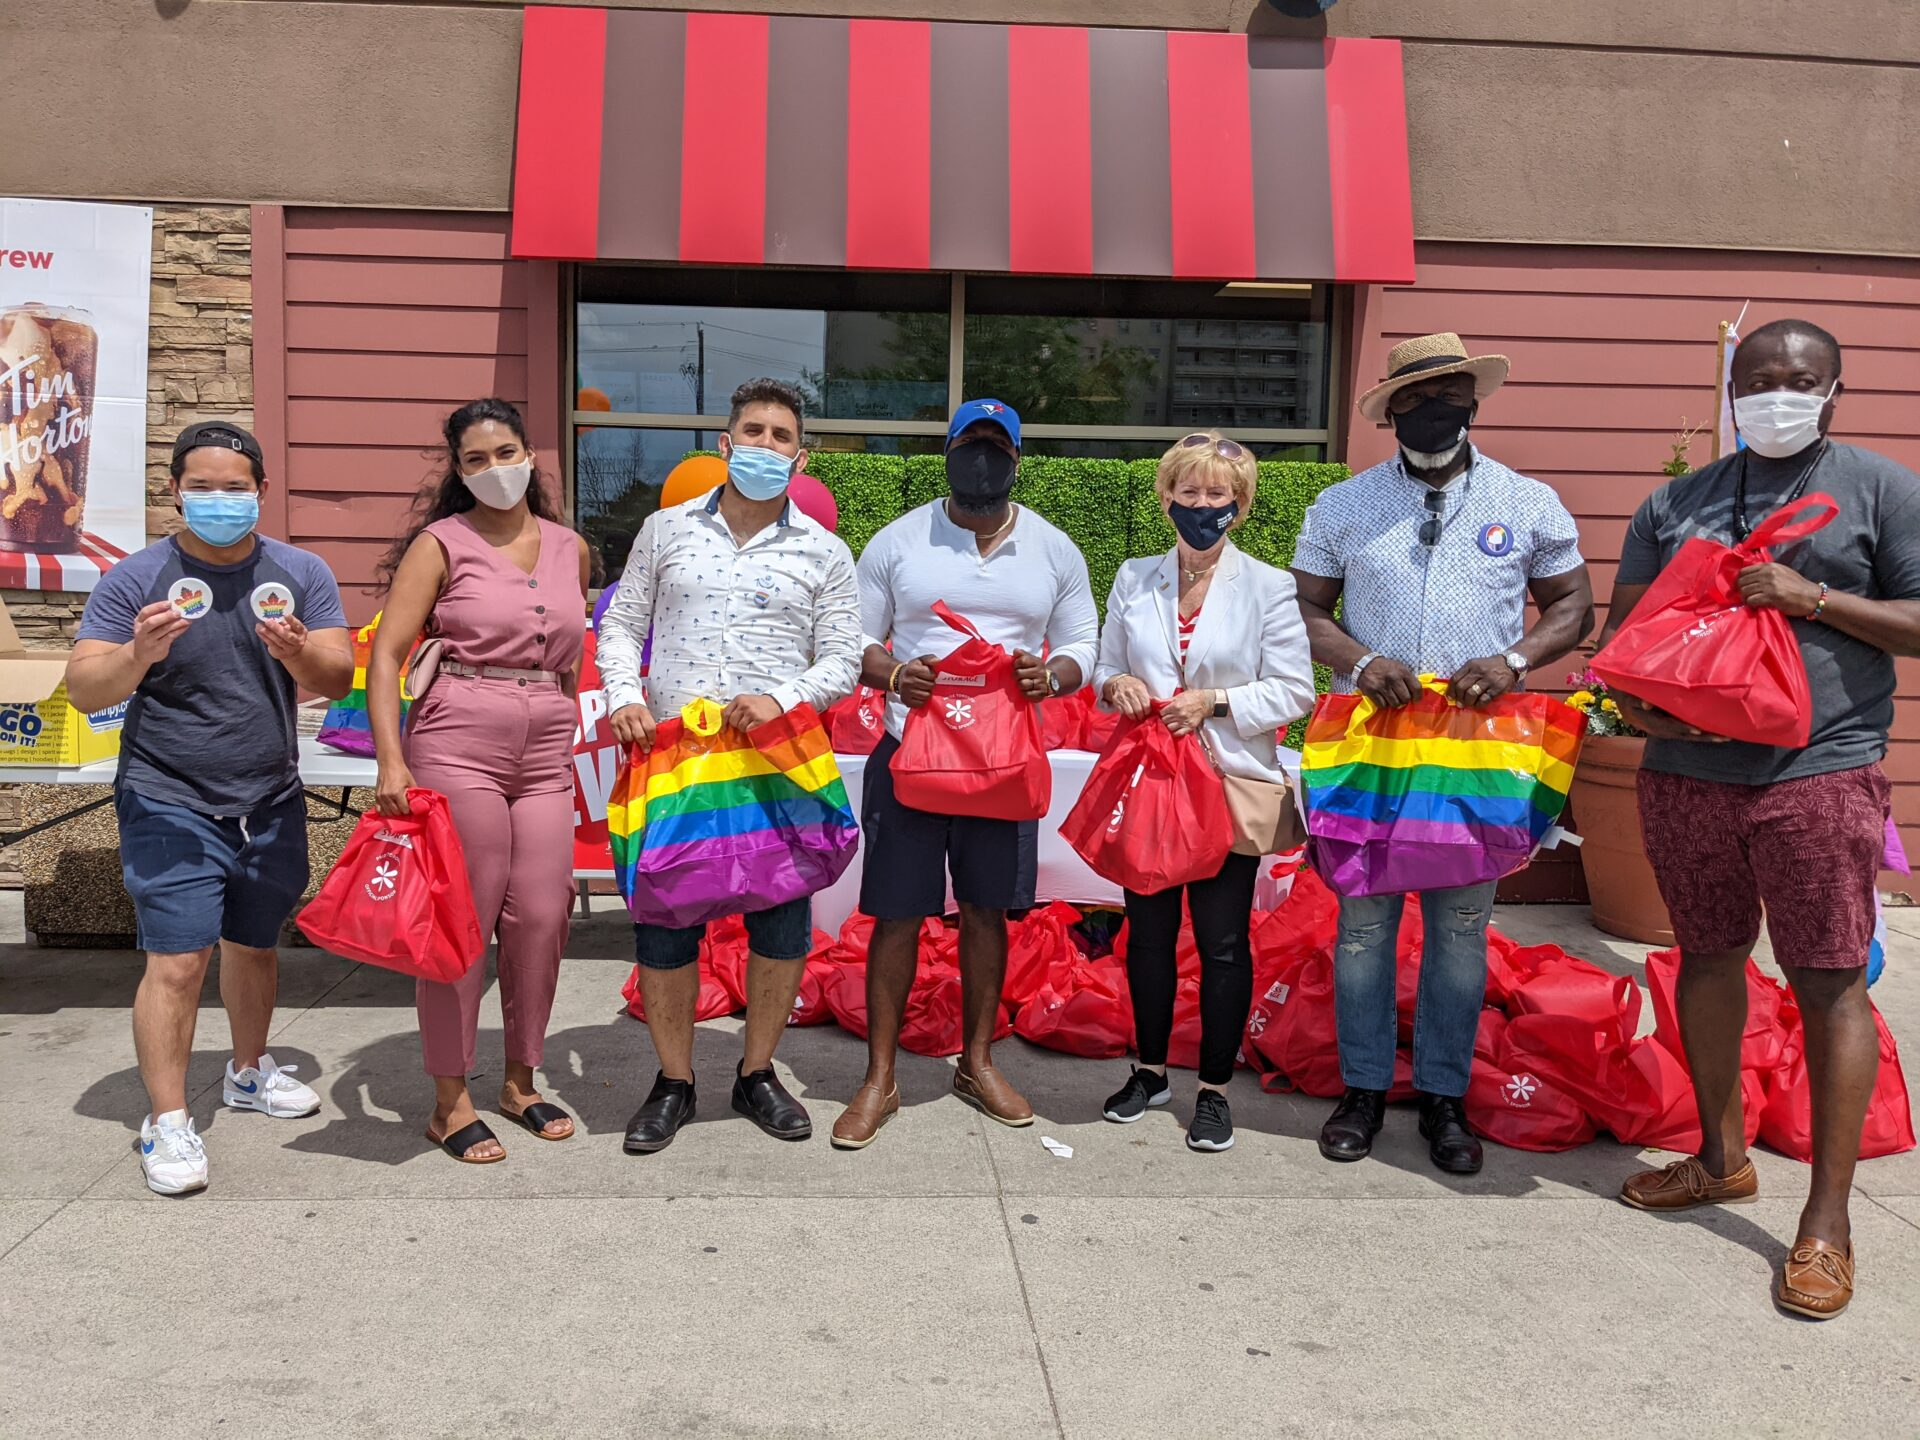 Grant (co-chair), Ayesha (Councillor Perruzza's Staff), Nader (JF Property Manager), O'Neil Johnson (Marketing Manager), Hon. MP Sgro, JF Mall Staff, Sherwin